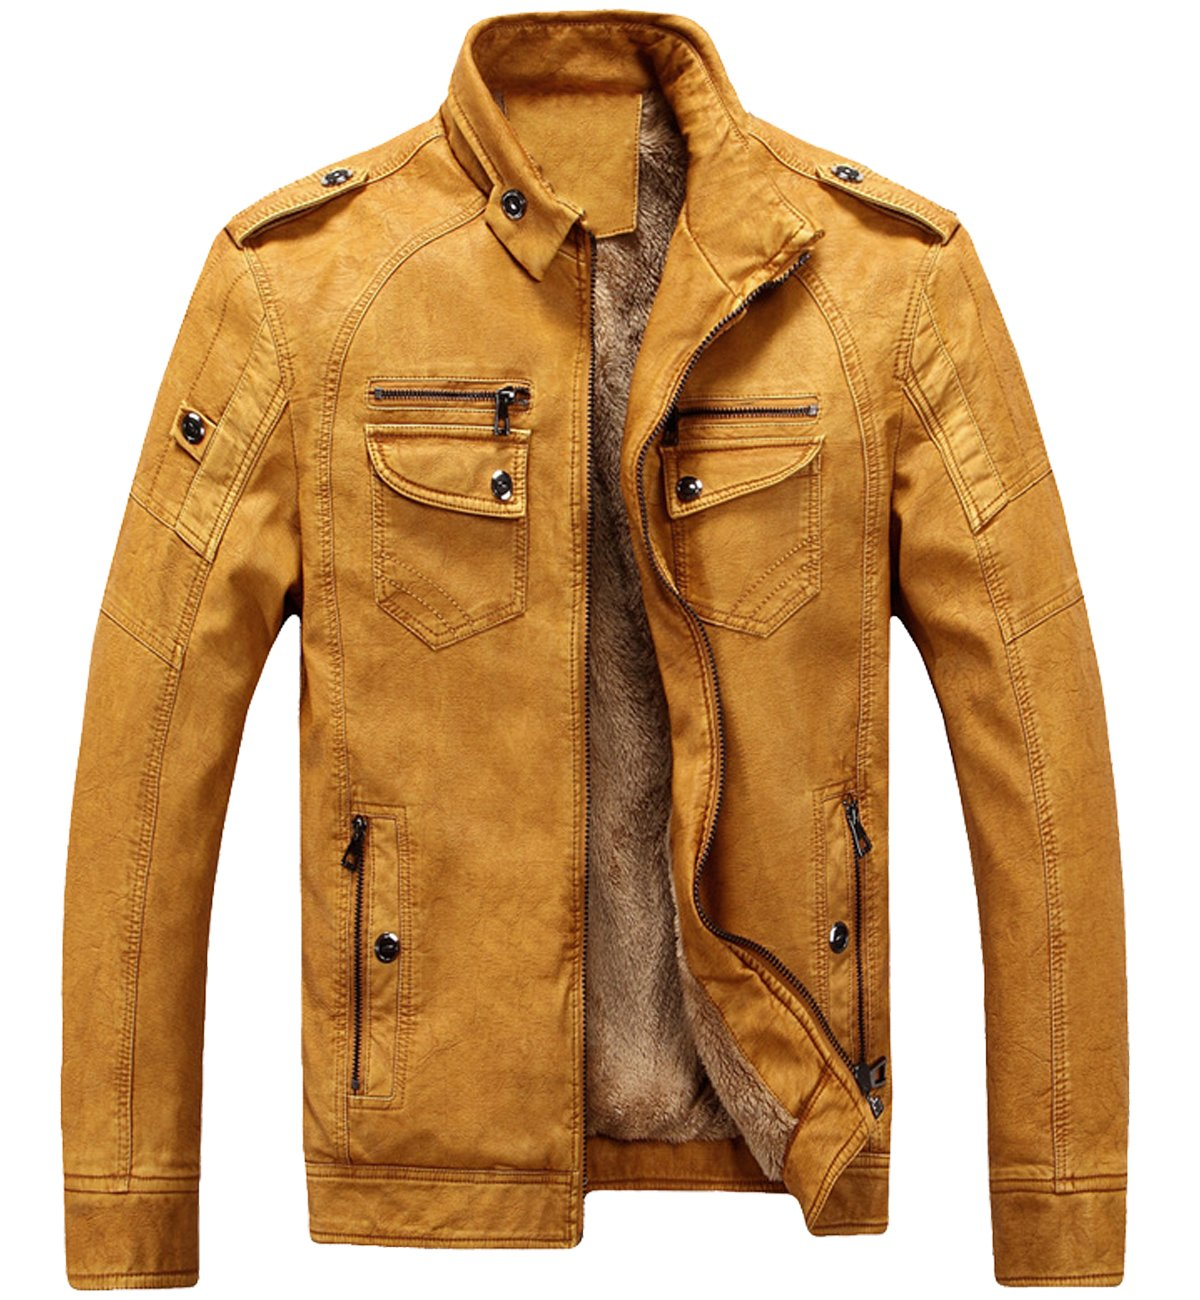 Trensom Men's Vintage Fleece PU Faux Leather Jacket Casual Thick Zip up Winter Moto Coat Yellow Large by Trensom